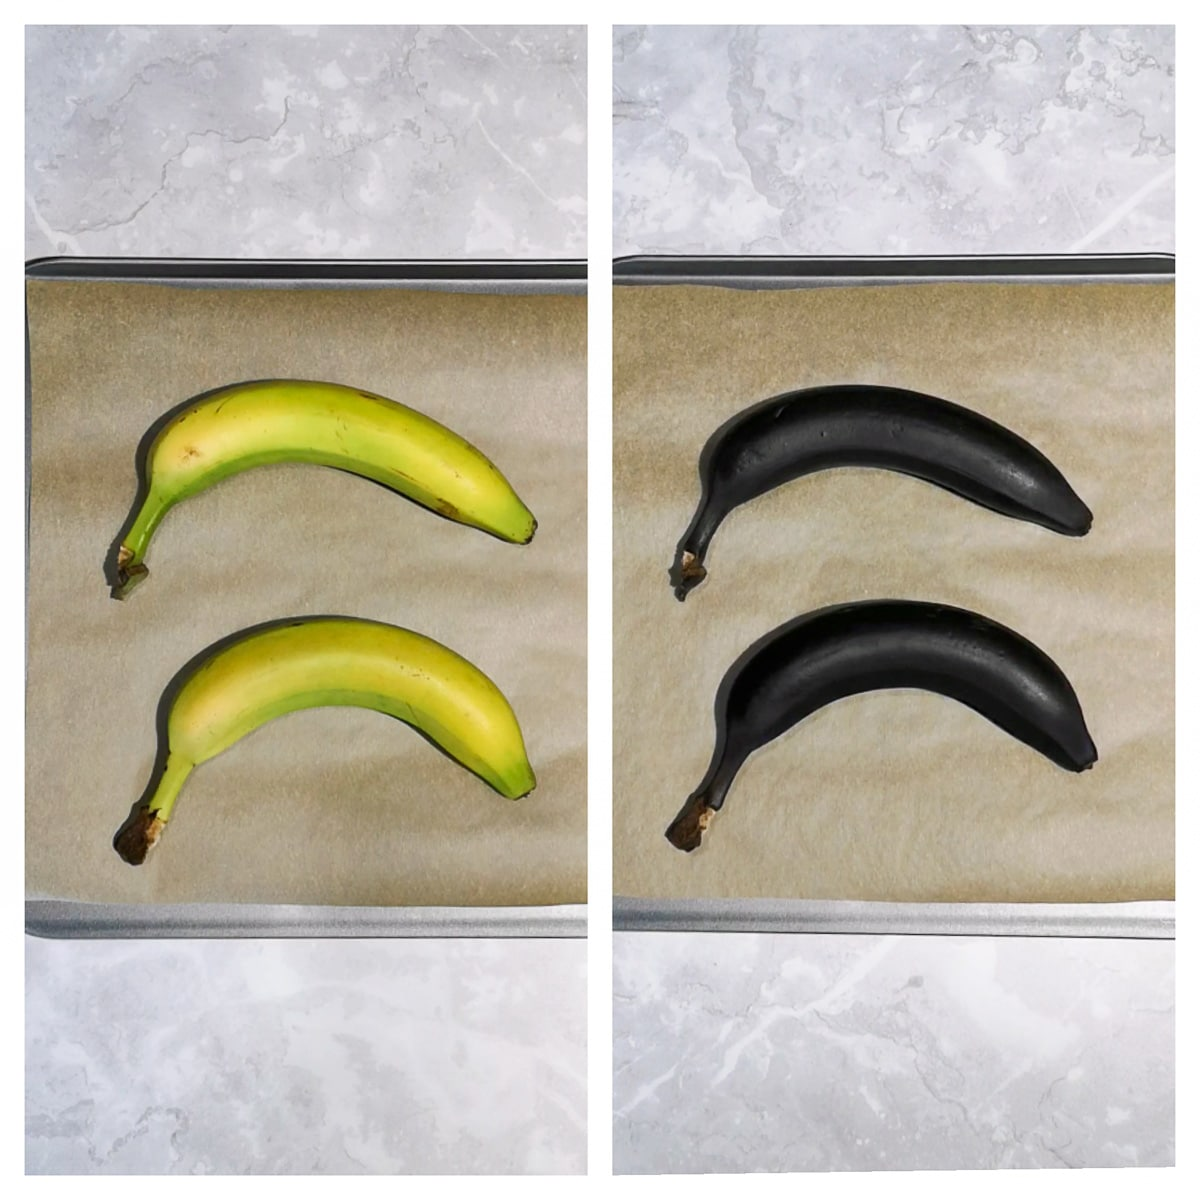 how to ripen bananas from unripe green bananas to brown ripe bananas - before and after